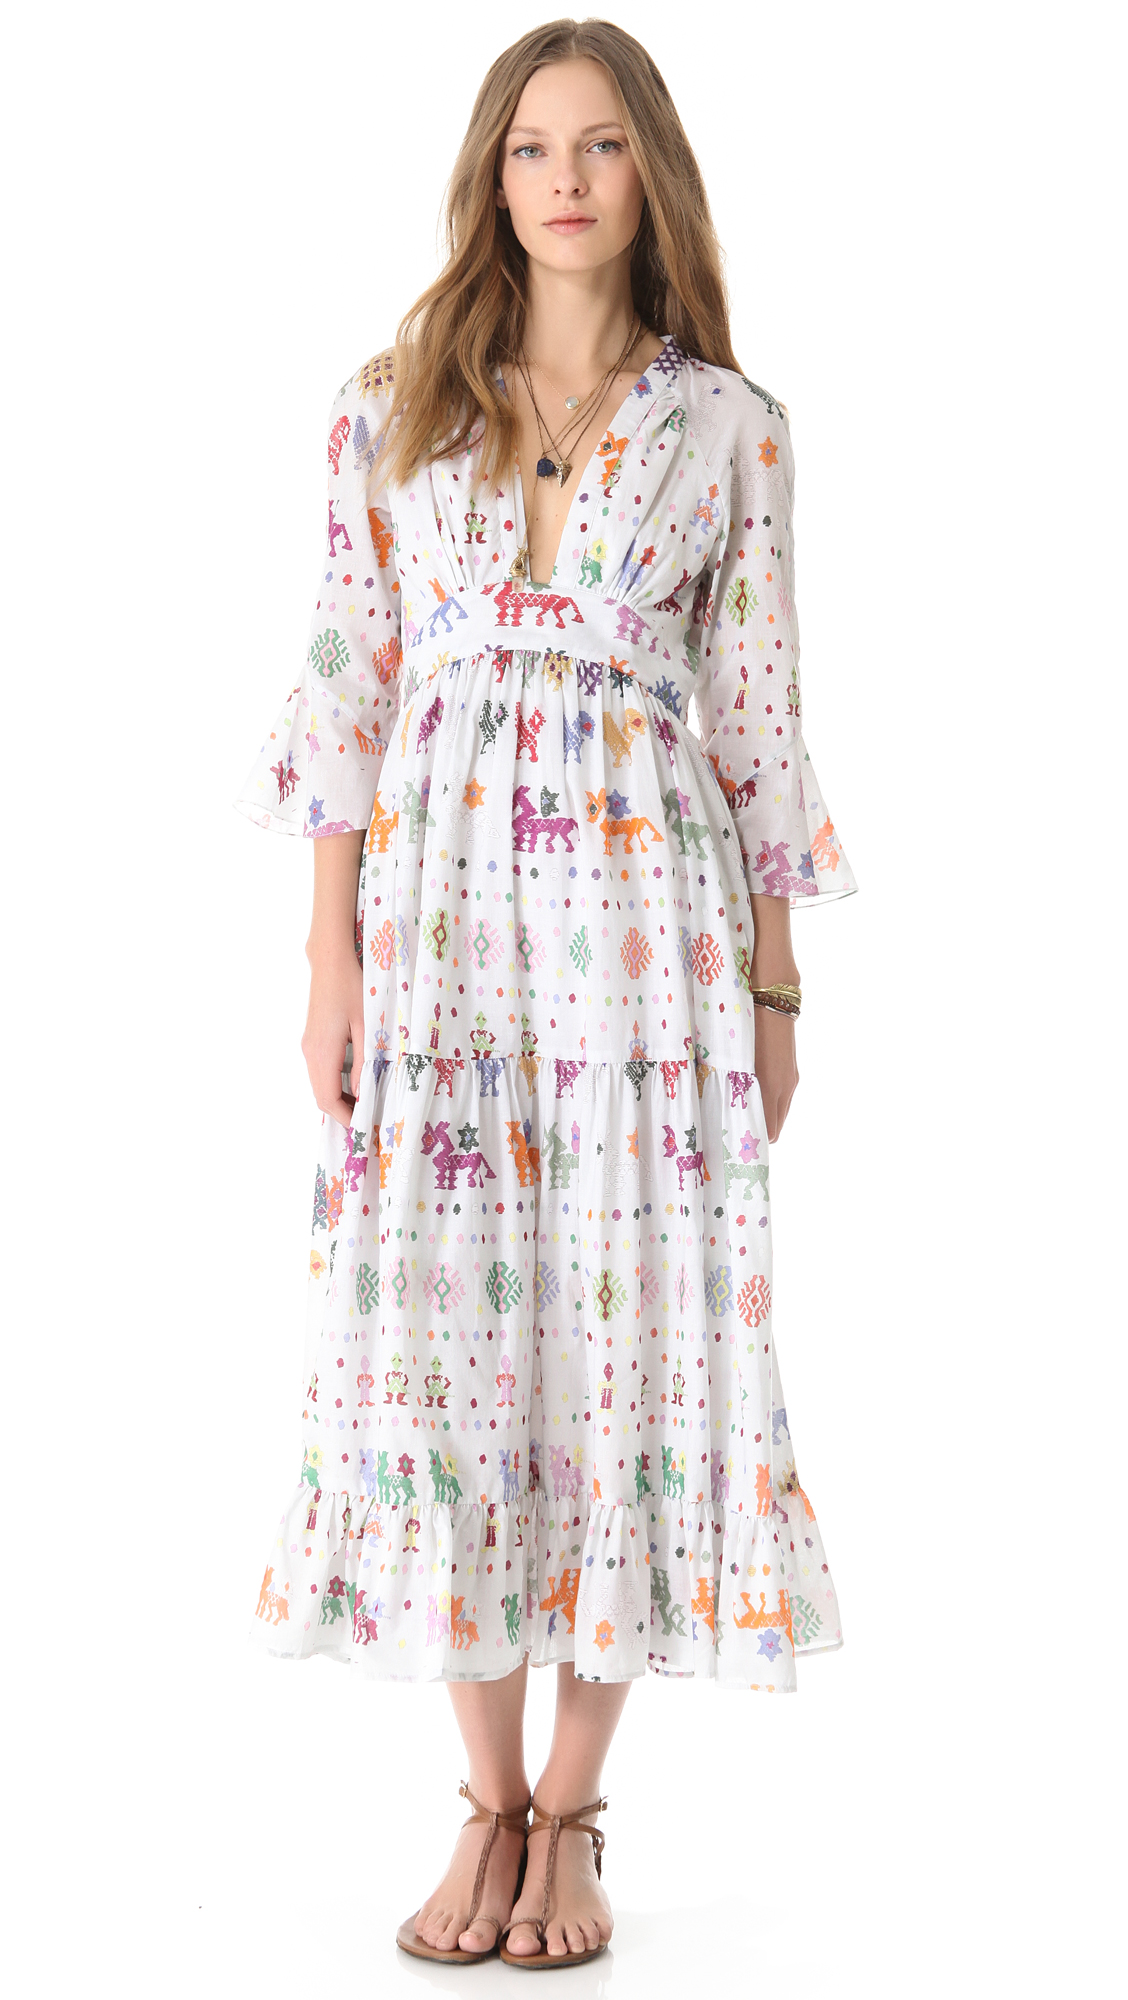 Carolina K Vintage Maxi Dress - SHOPBOP